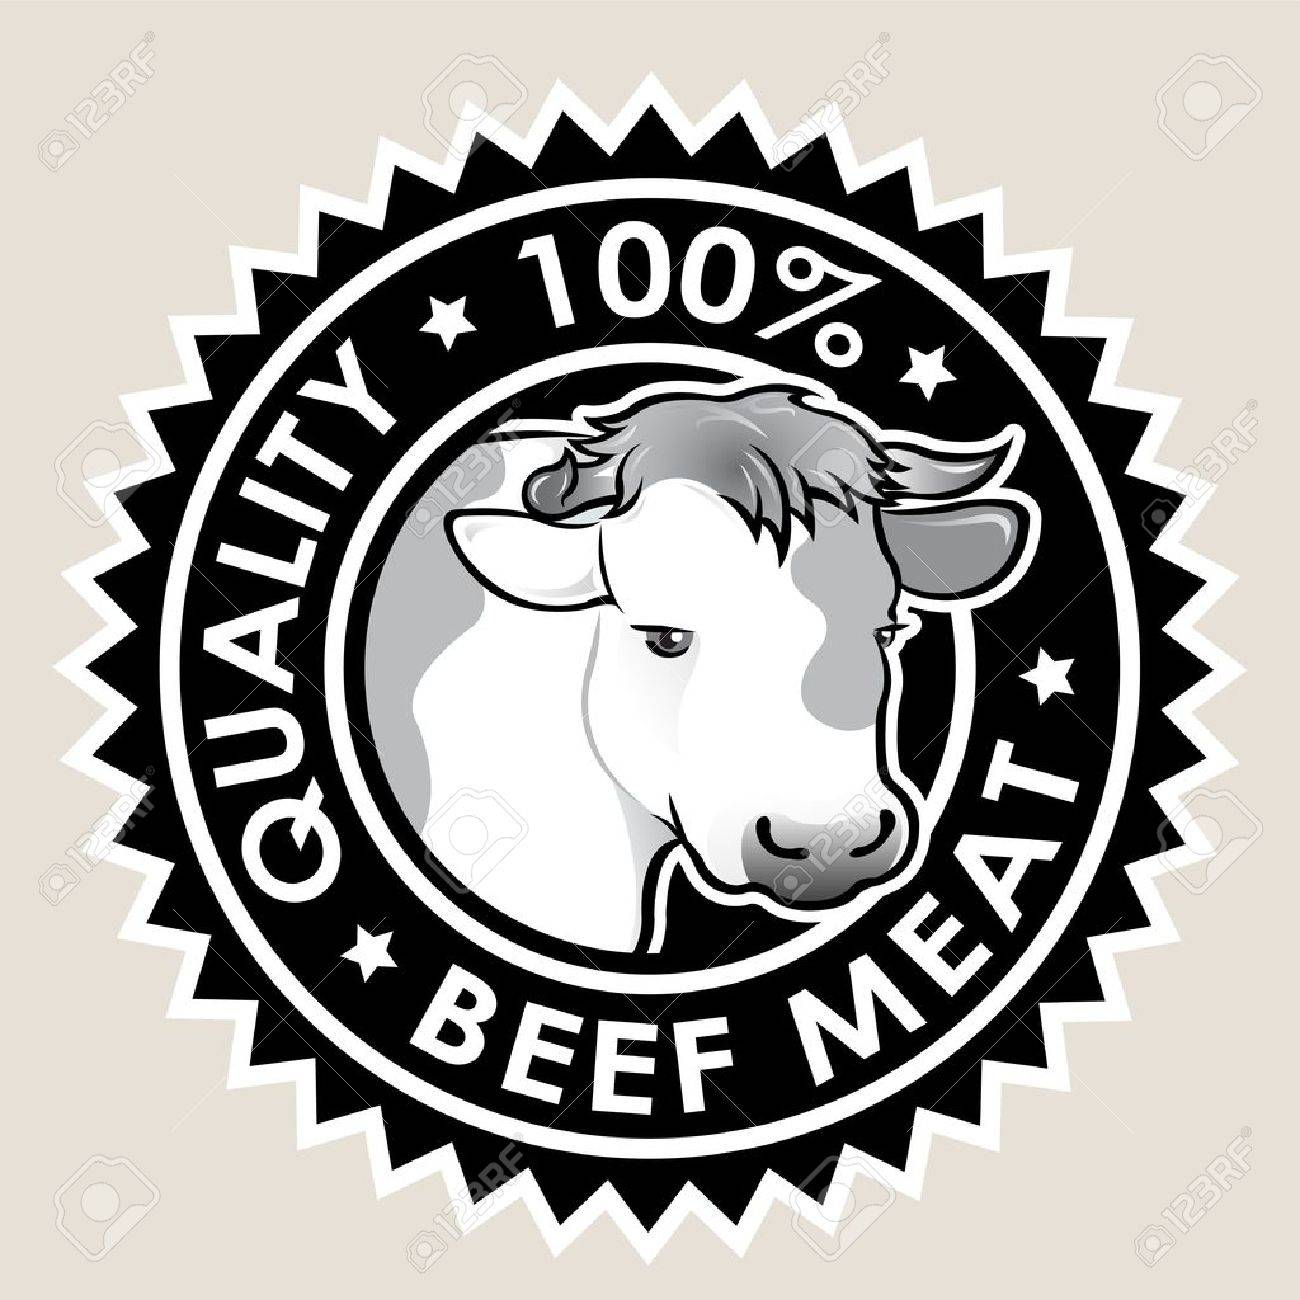 Beef Meat Quality 100% Seal - 13848598